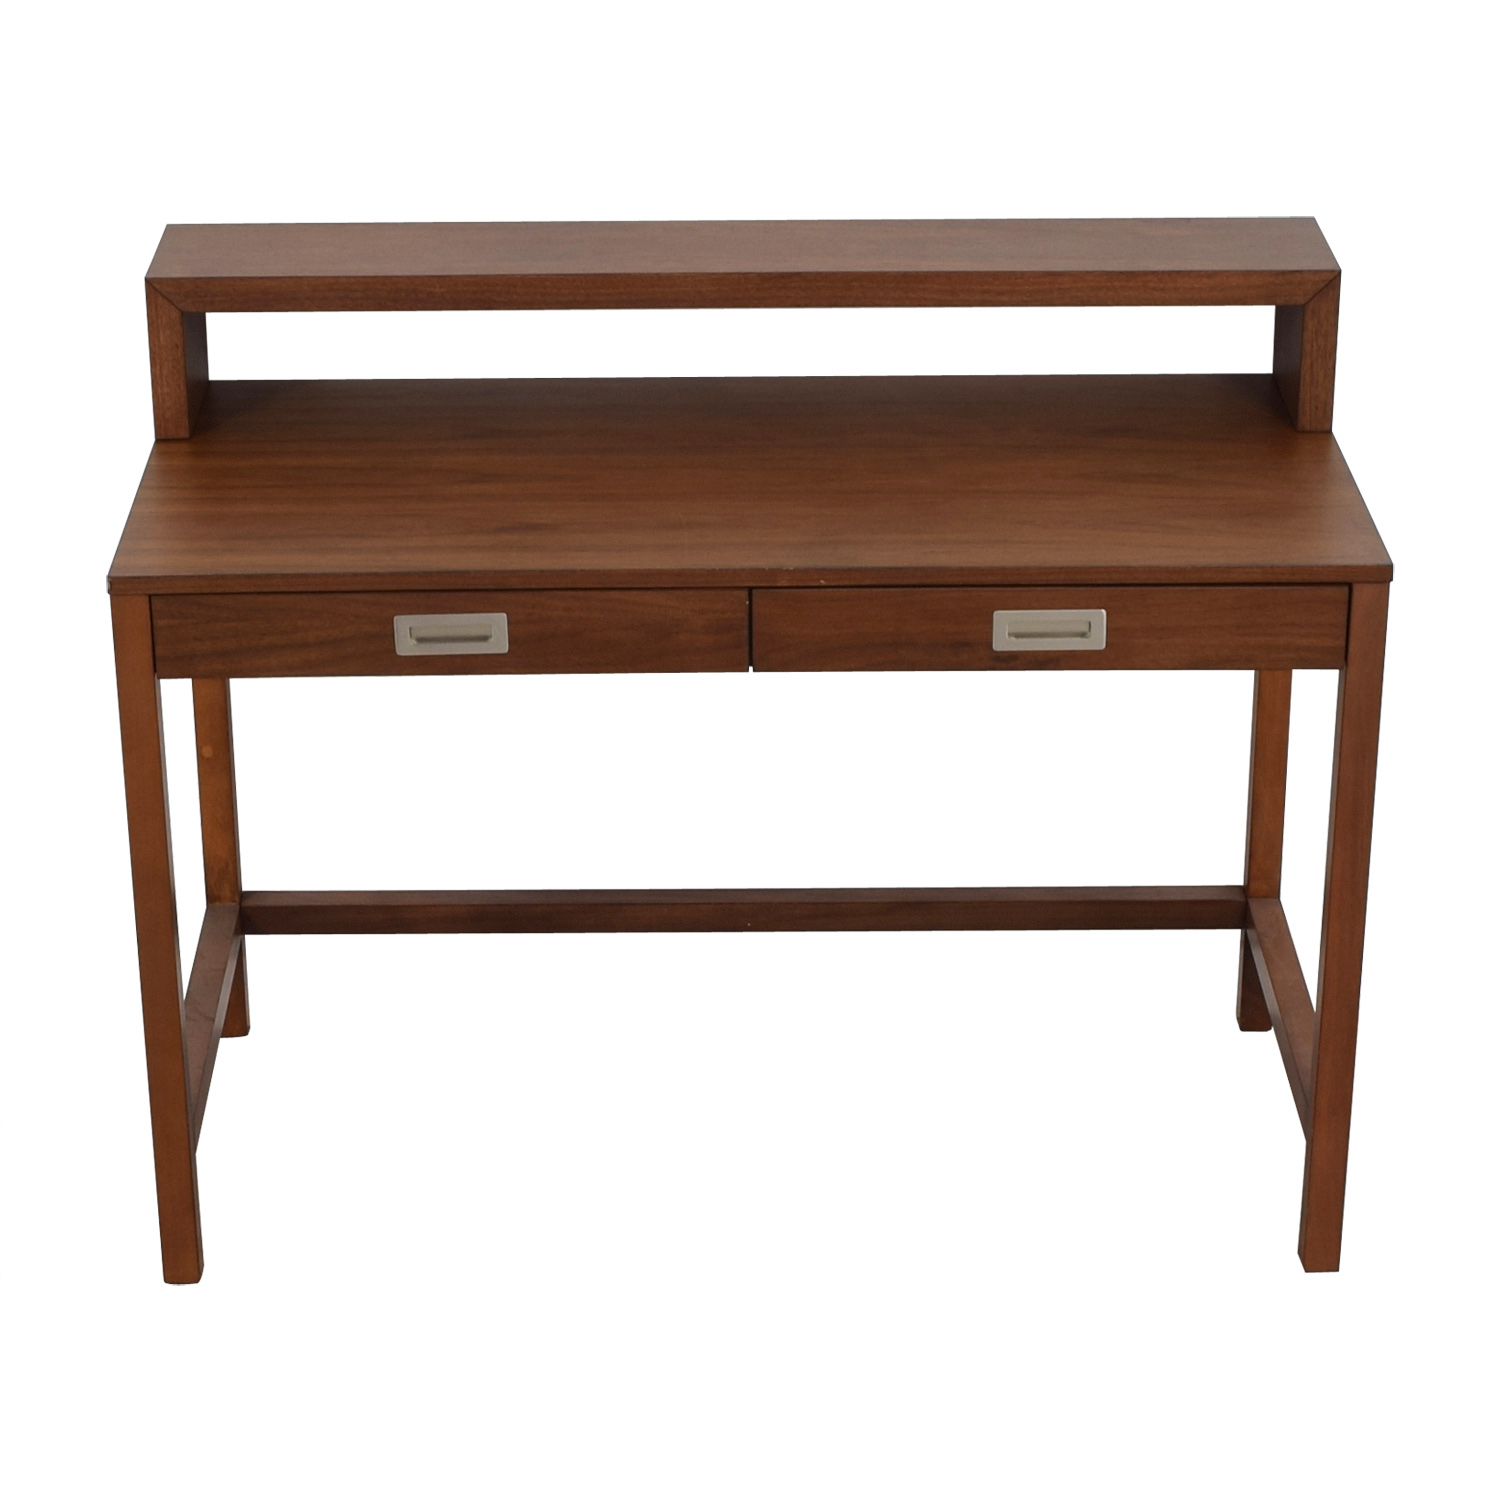 Crate & Barrel Crate & Barrel Aspect Walnut Modular Desk with Hutch on sale